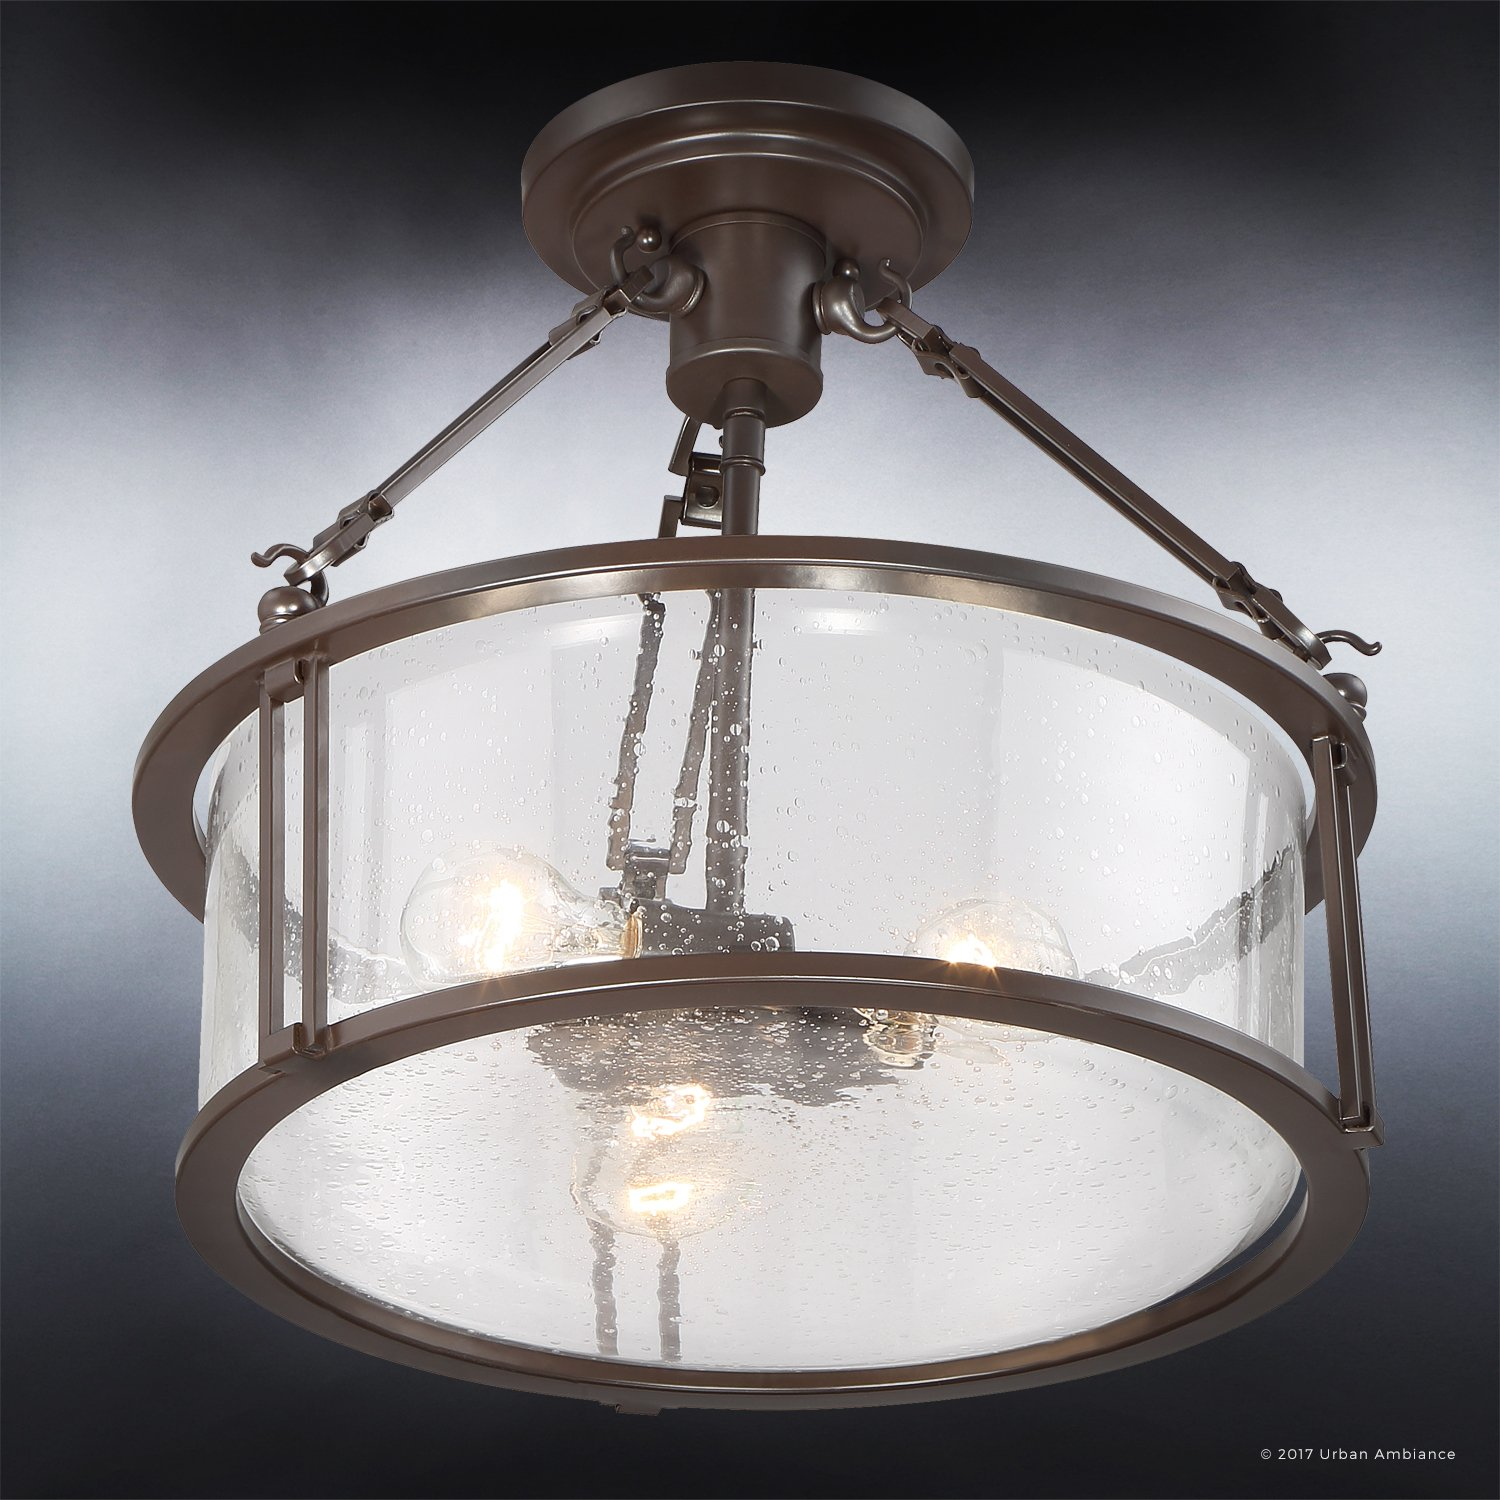 Luxury Industrial Semi-Flush Ceiling Light, Medium Size: 14.25''H x 16''W, with Western Style Elements, Rectangular Link Design, Elegant Estate Bronze Finish and Seeded Glass, UQL2133 by Urban Ambiance by Urban Ambiance (Image #4)